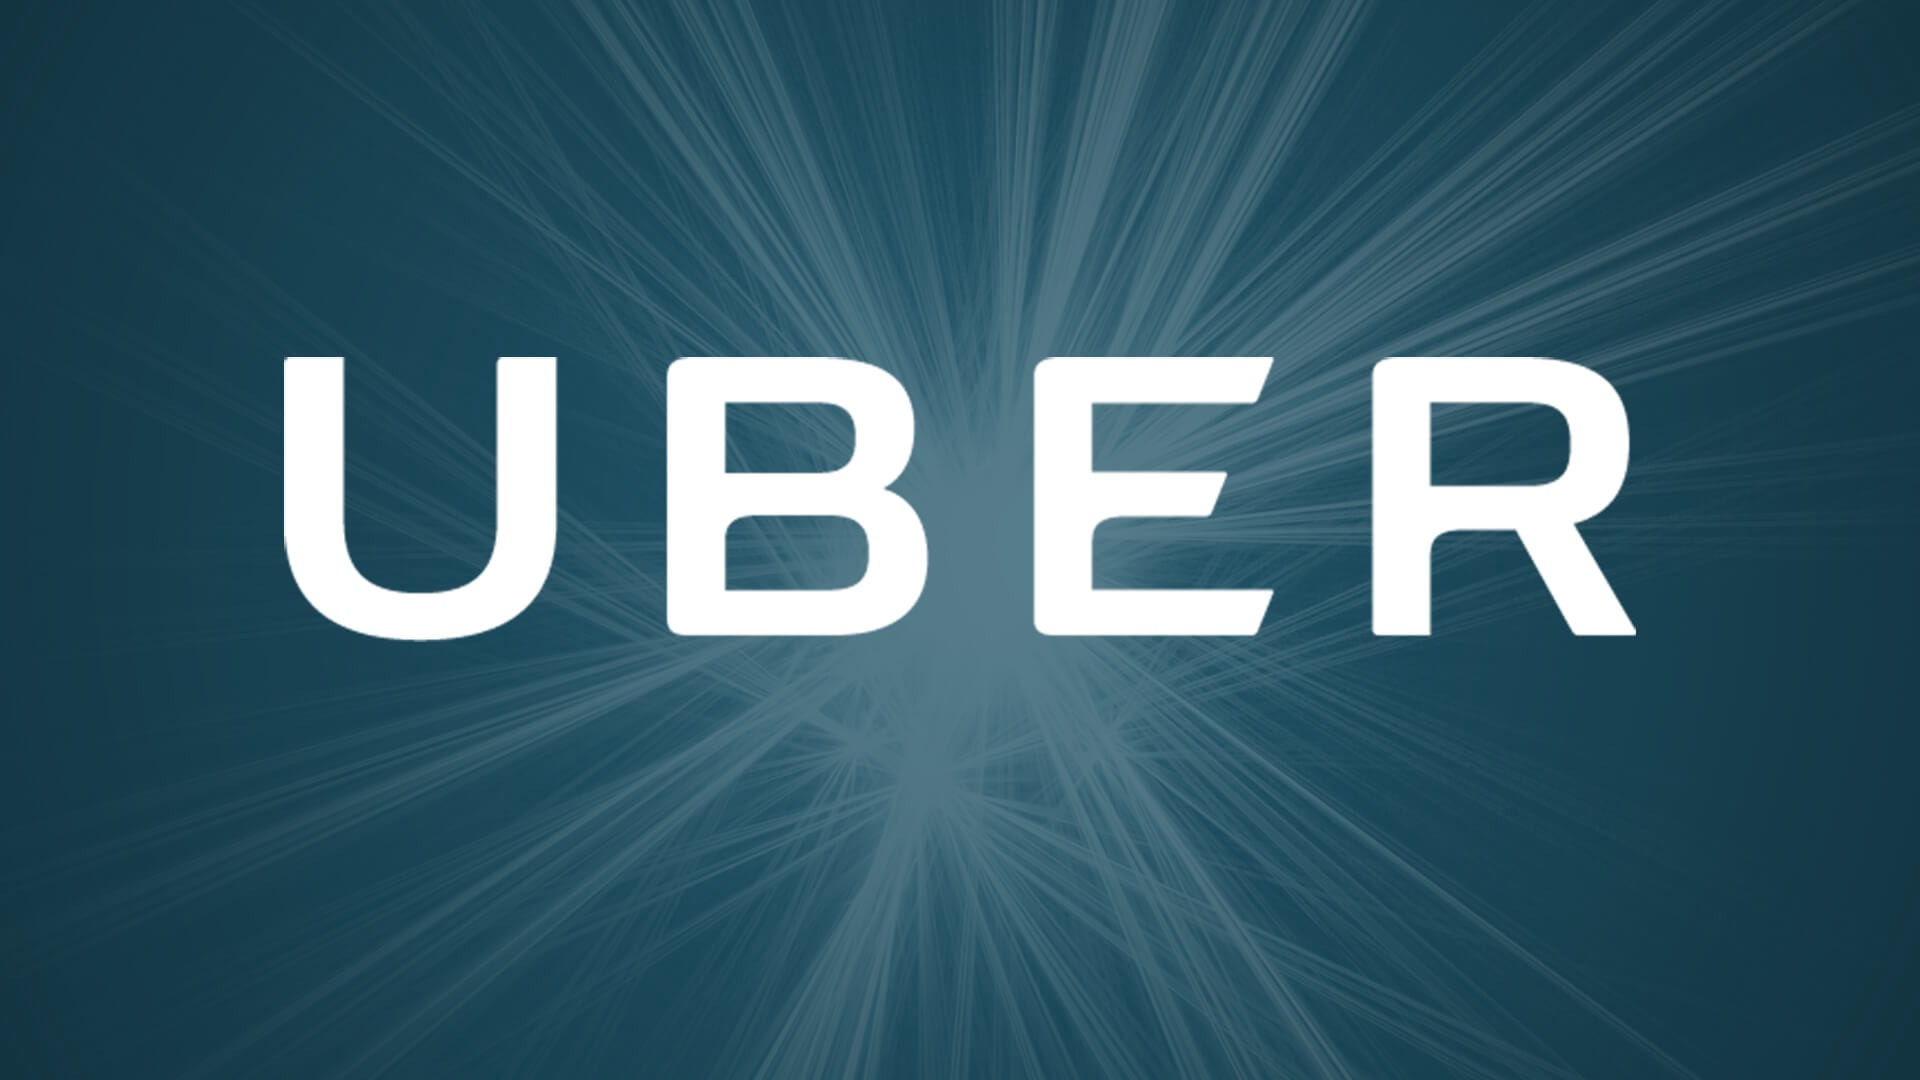 Uber's Exploiting Their Drivers - Phil Rossi - Medium